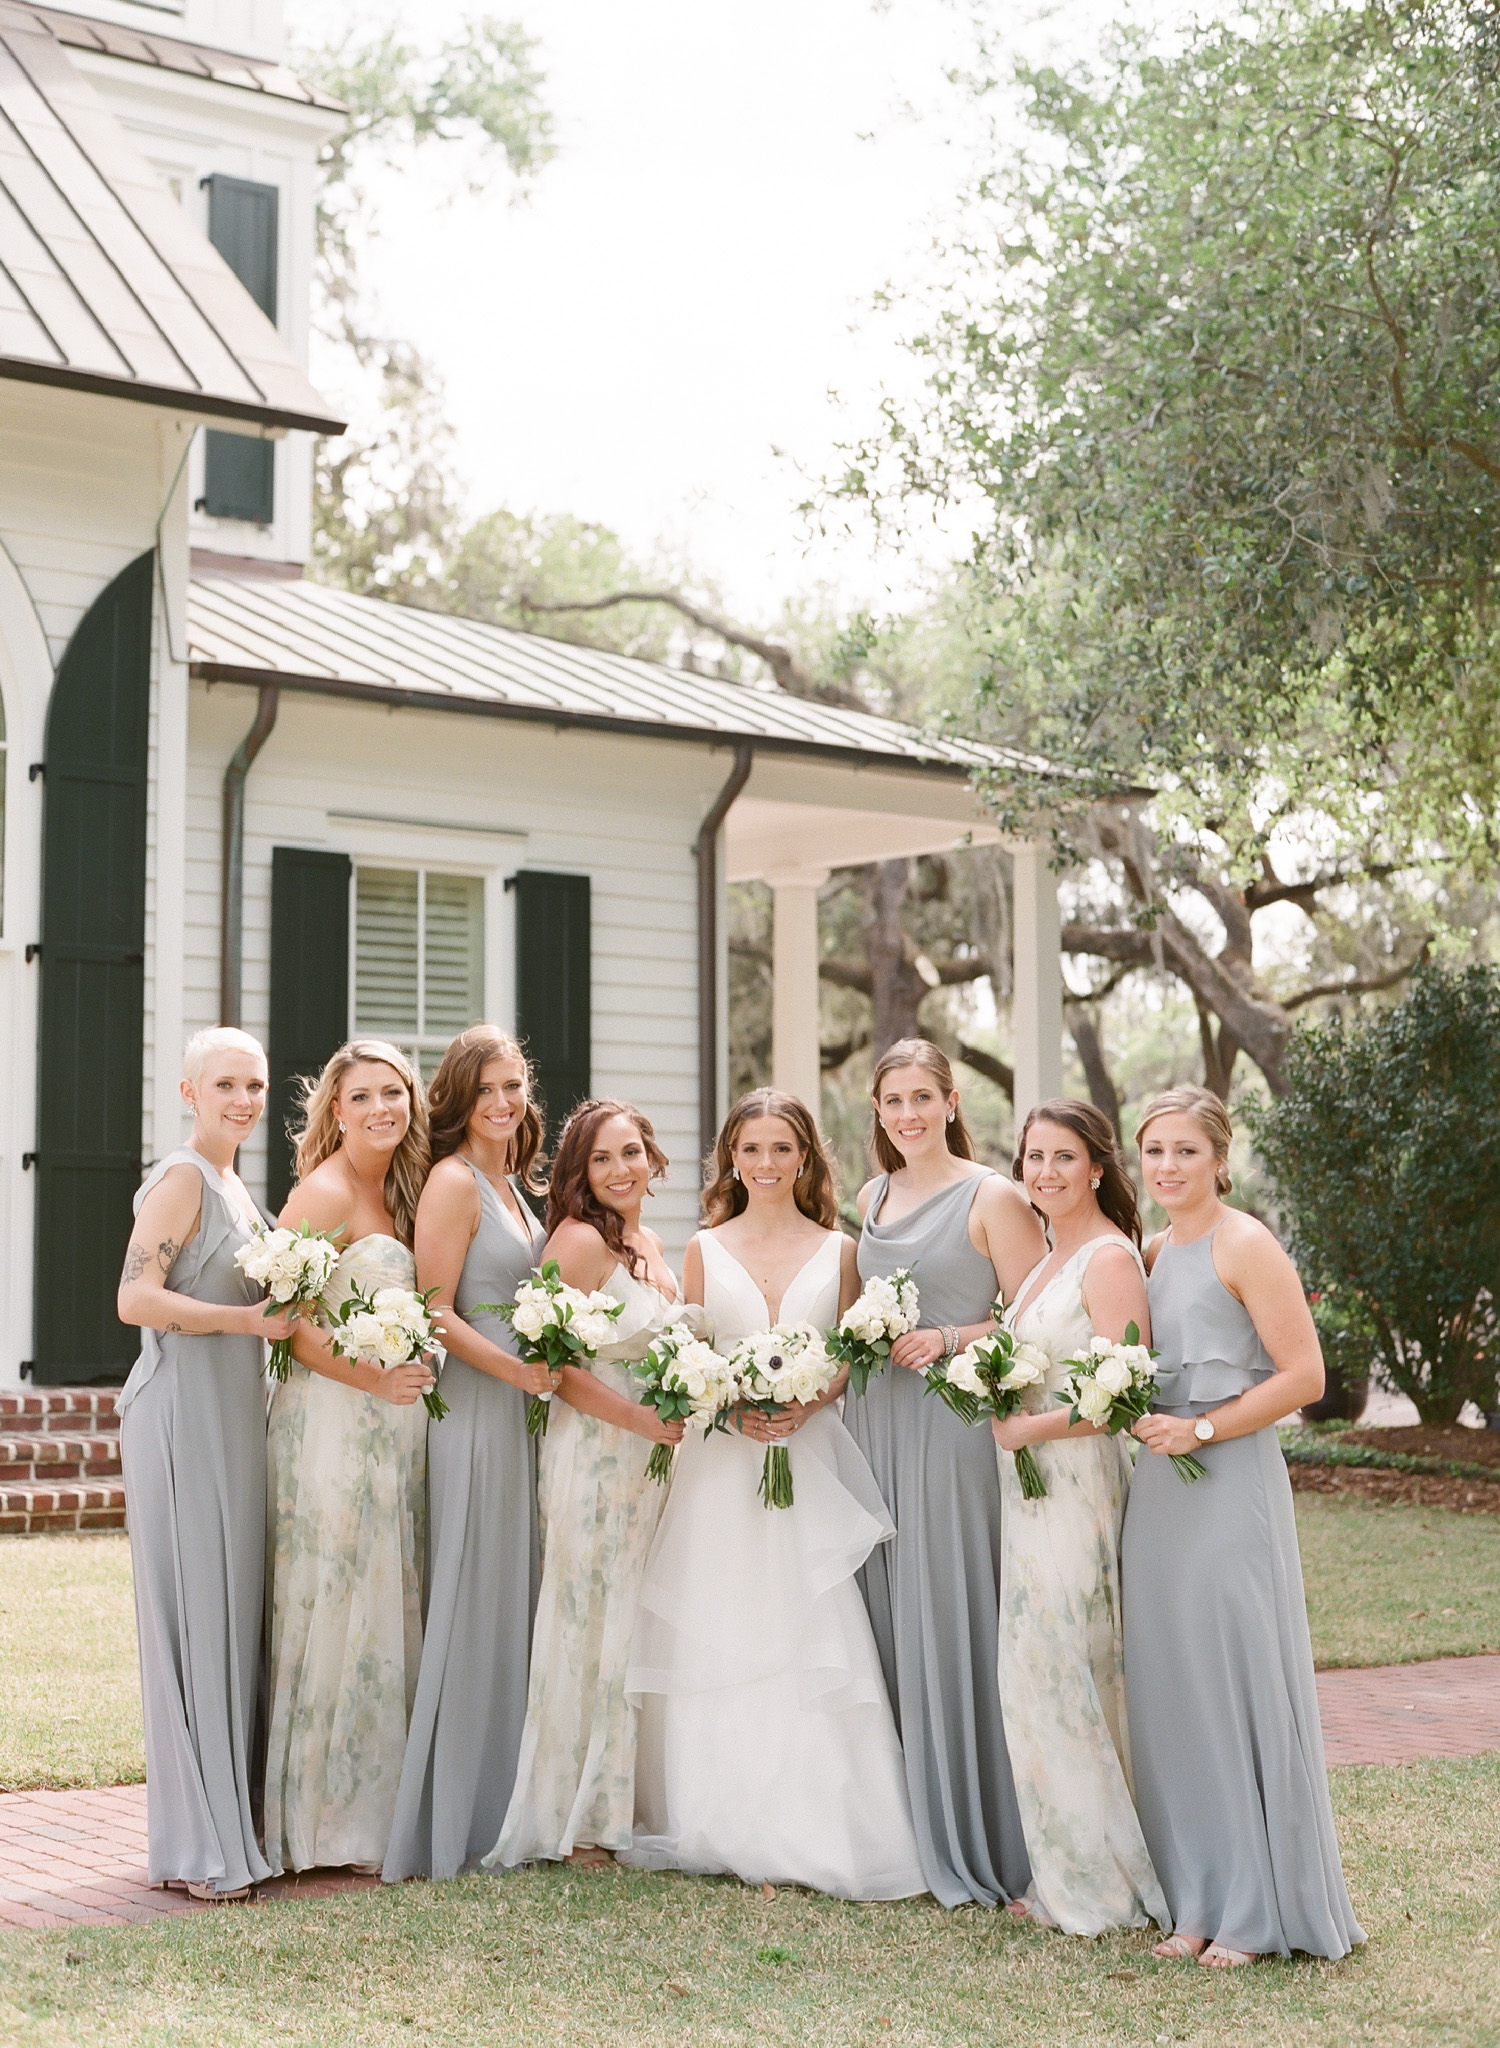 Palmetto-Bluff-Wedding-Photographer-27.jpg